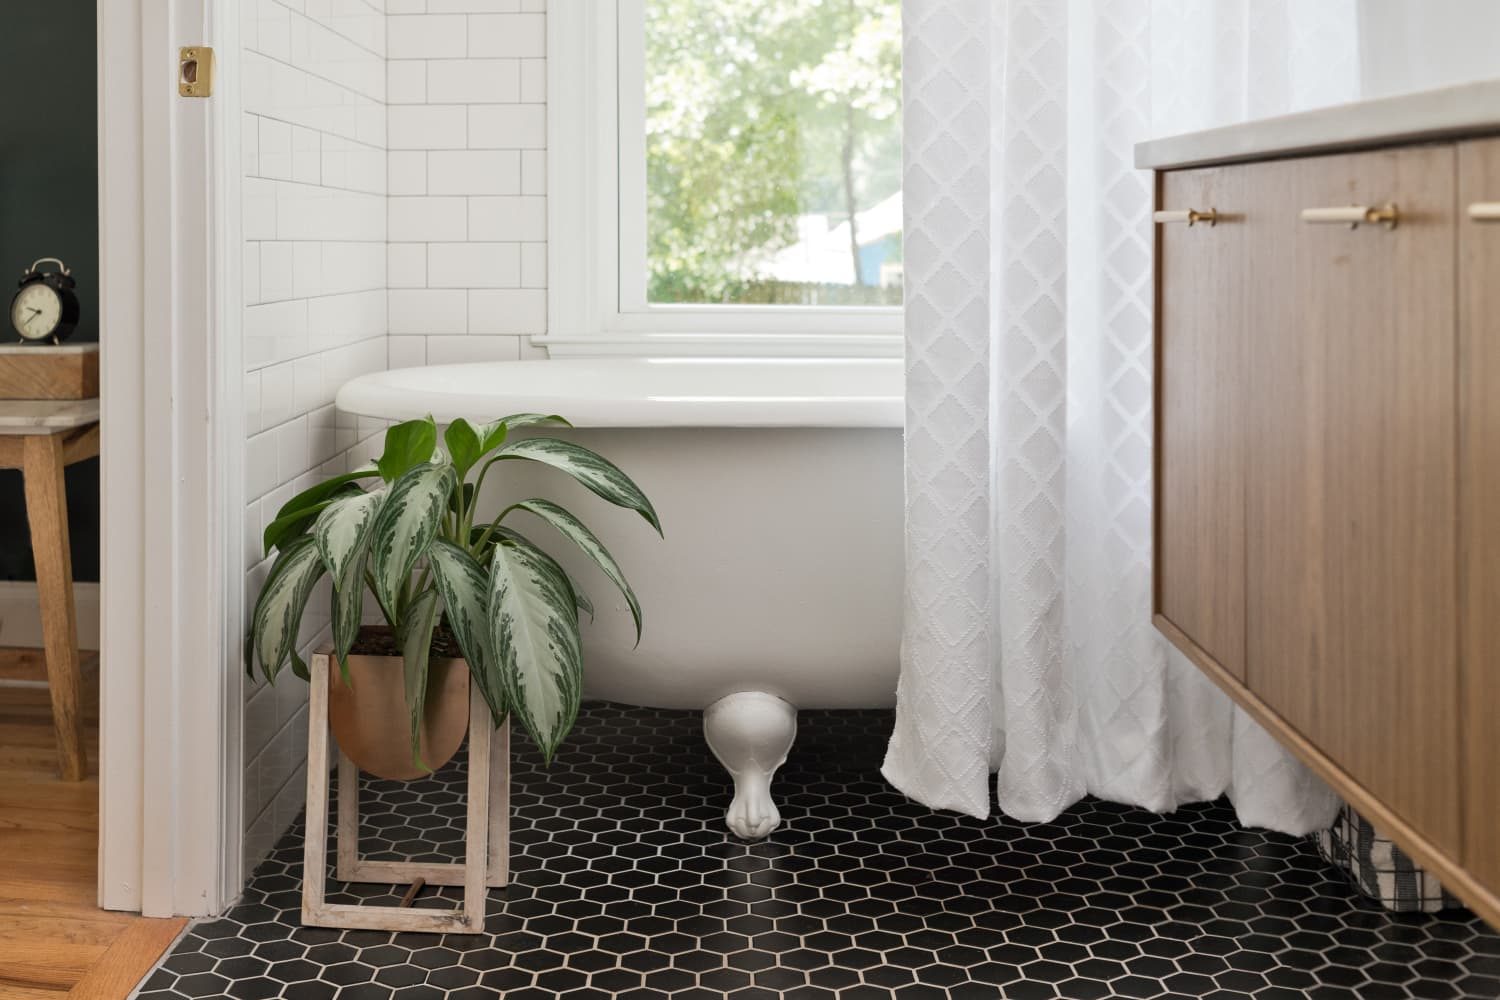 10 Quick Steps to a Cleaner Bathroom, Both Inside and Out